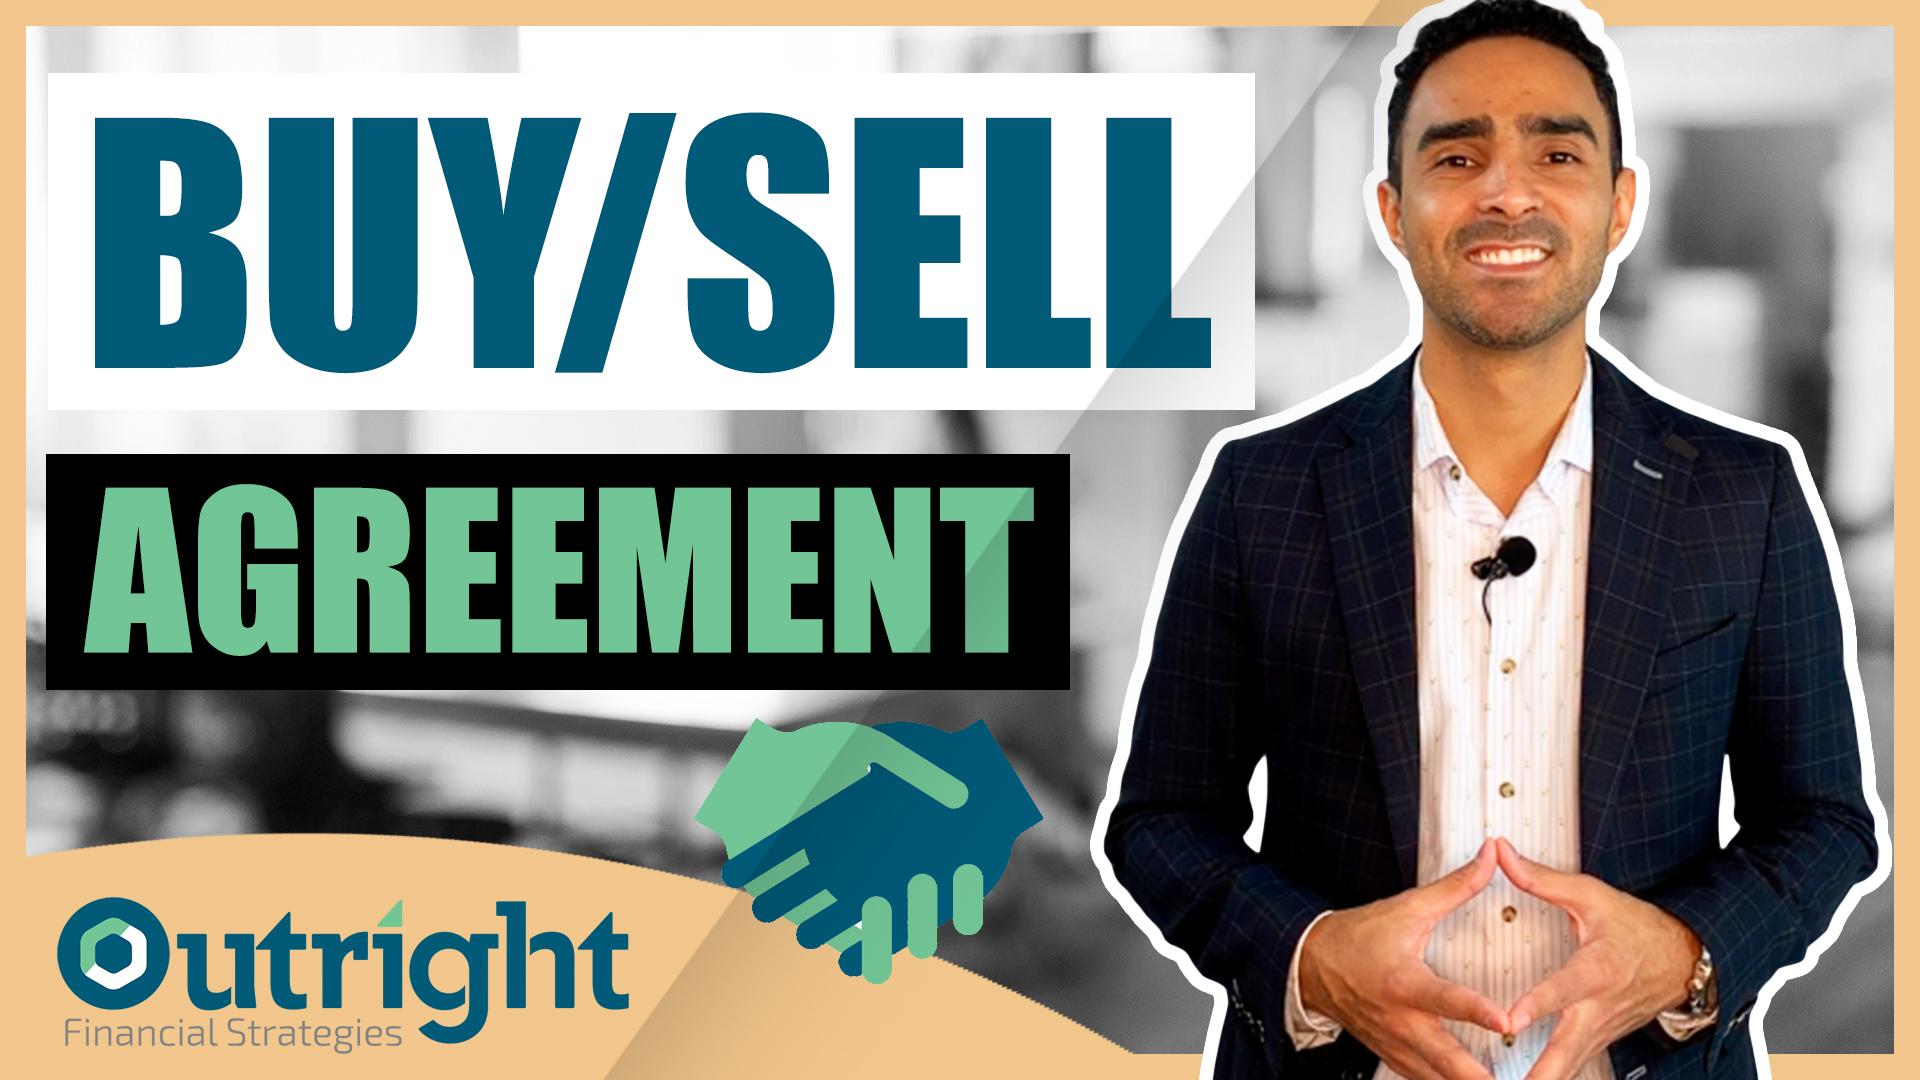 What is a Buy/Sell Agreement Thumbnail